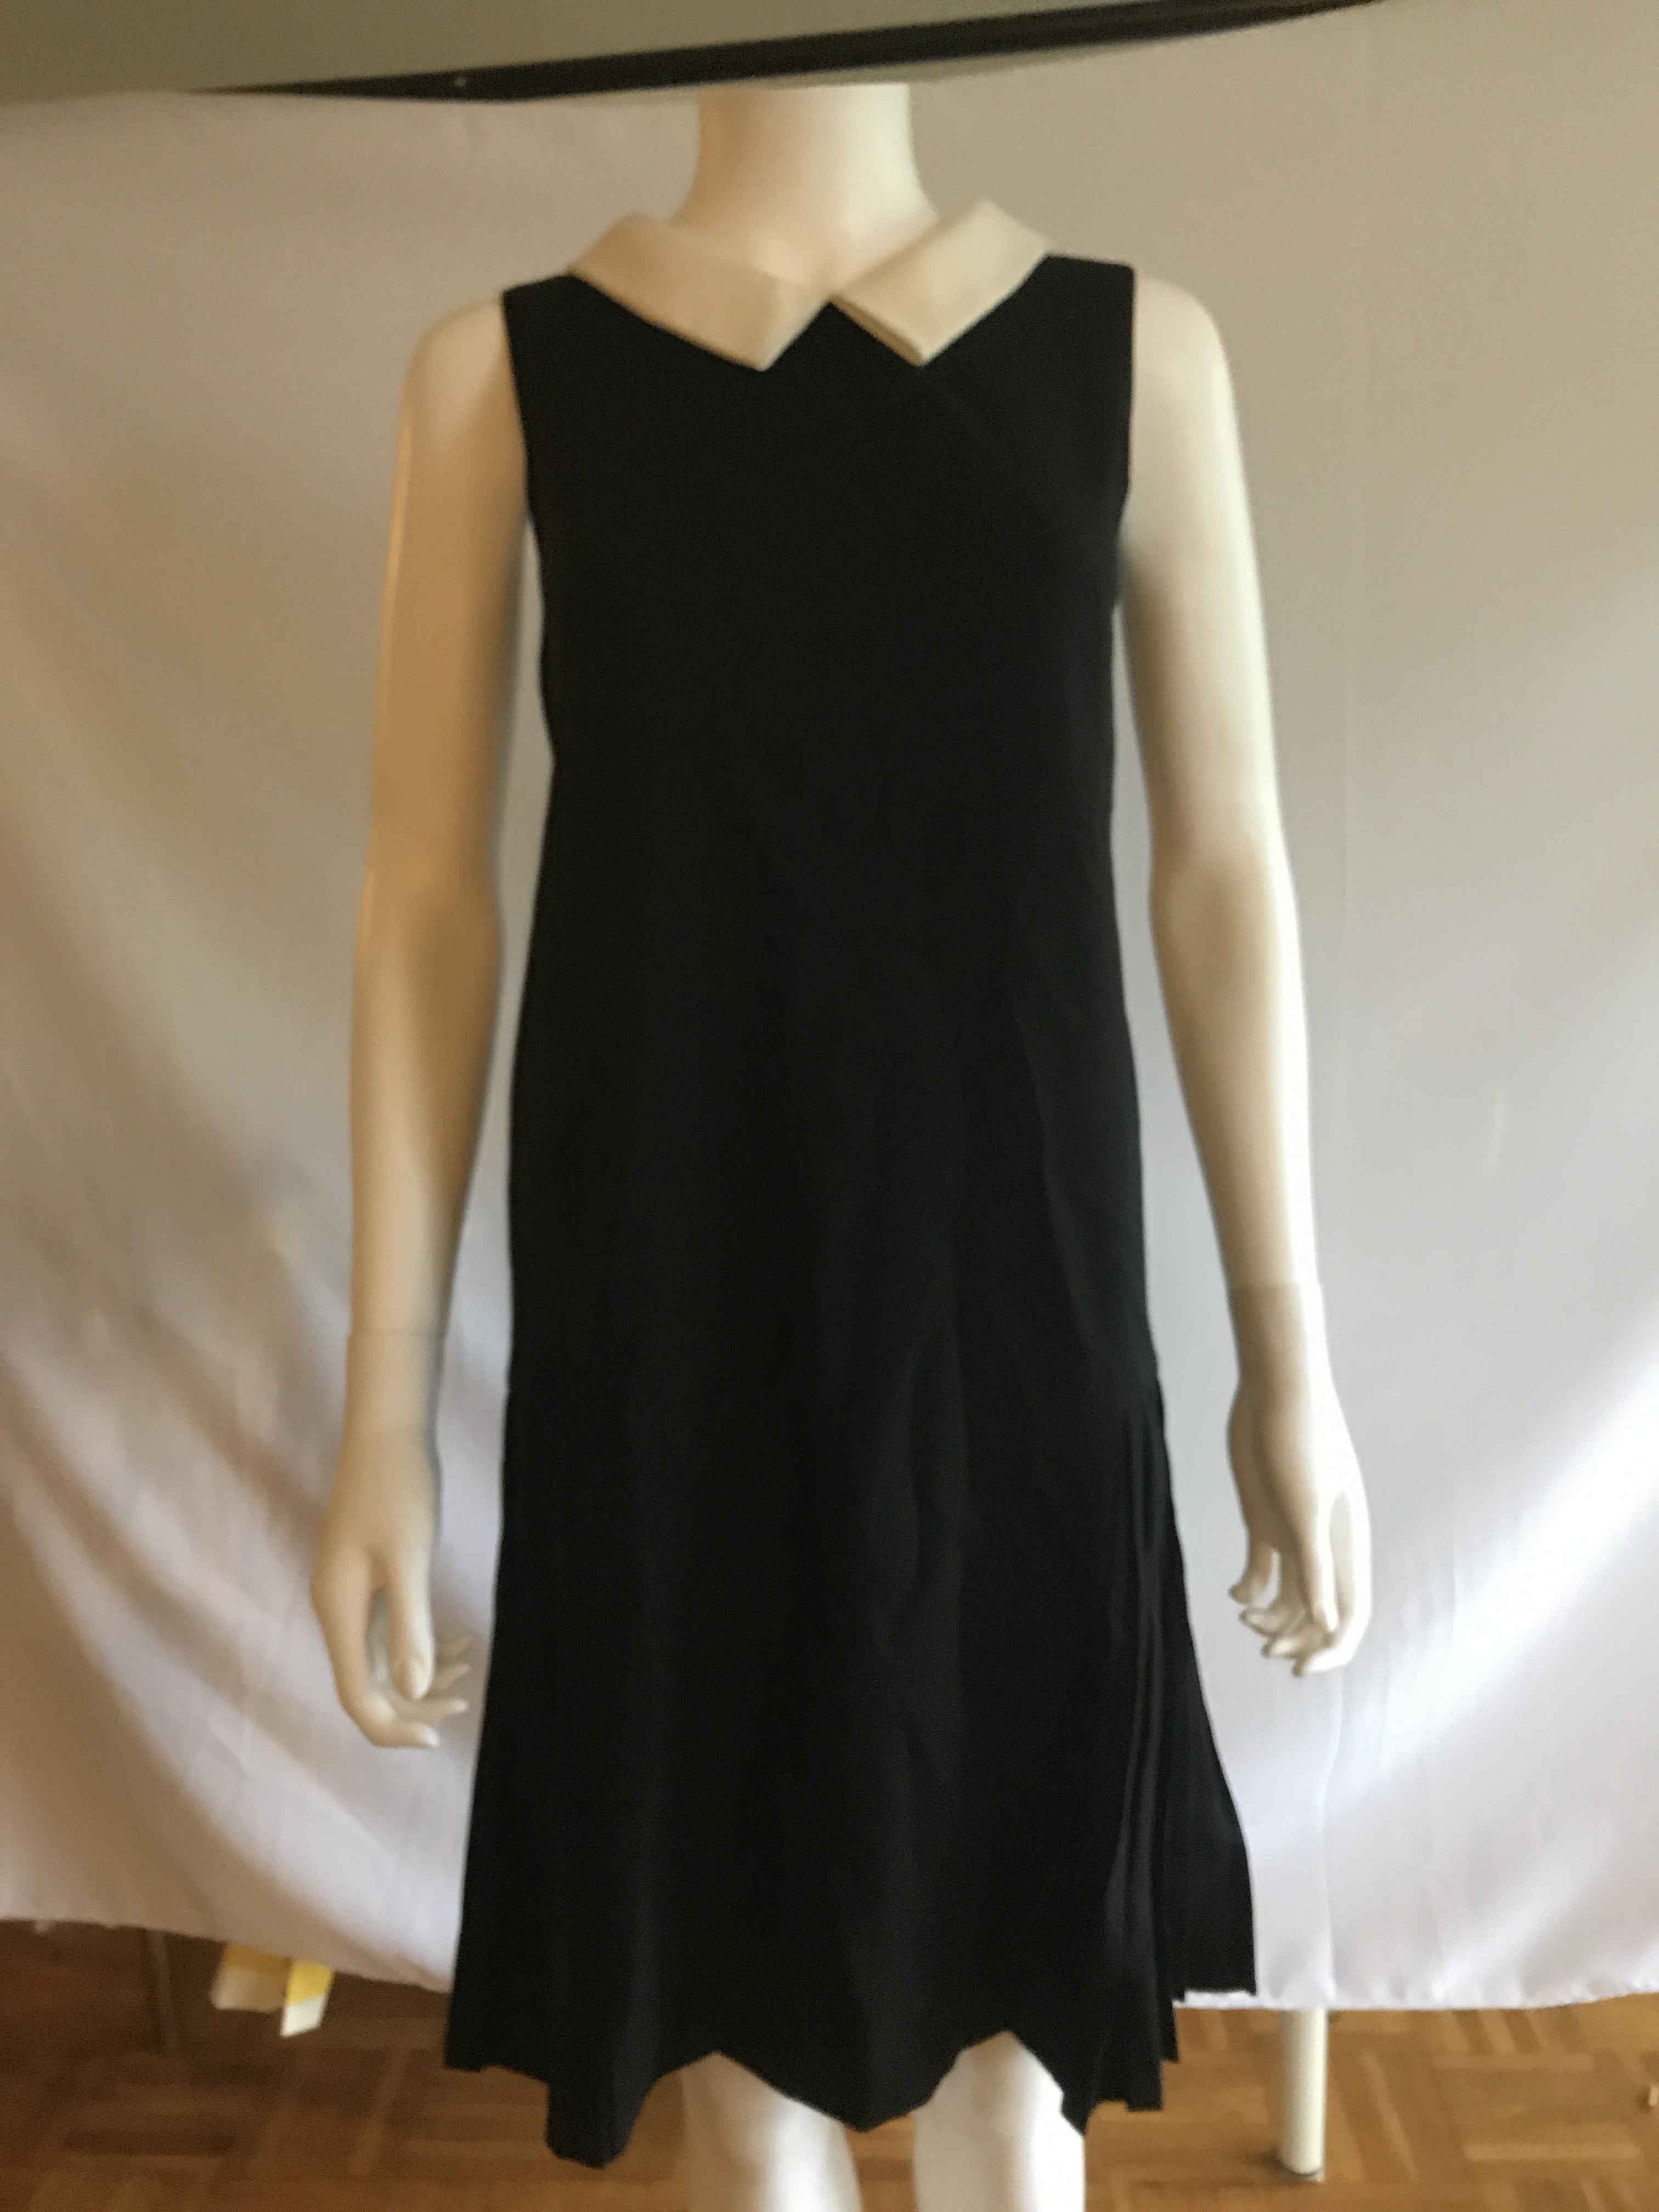 White Collar Black Sleeveless Dresses - BAD HABIT